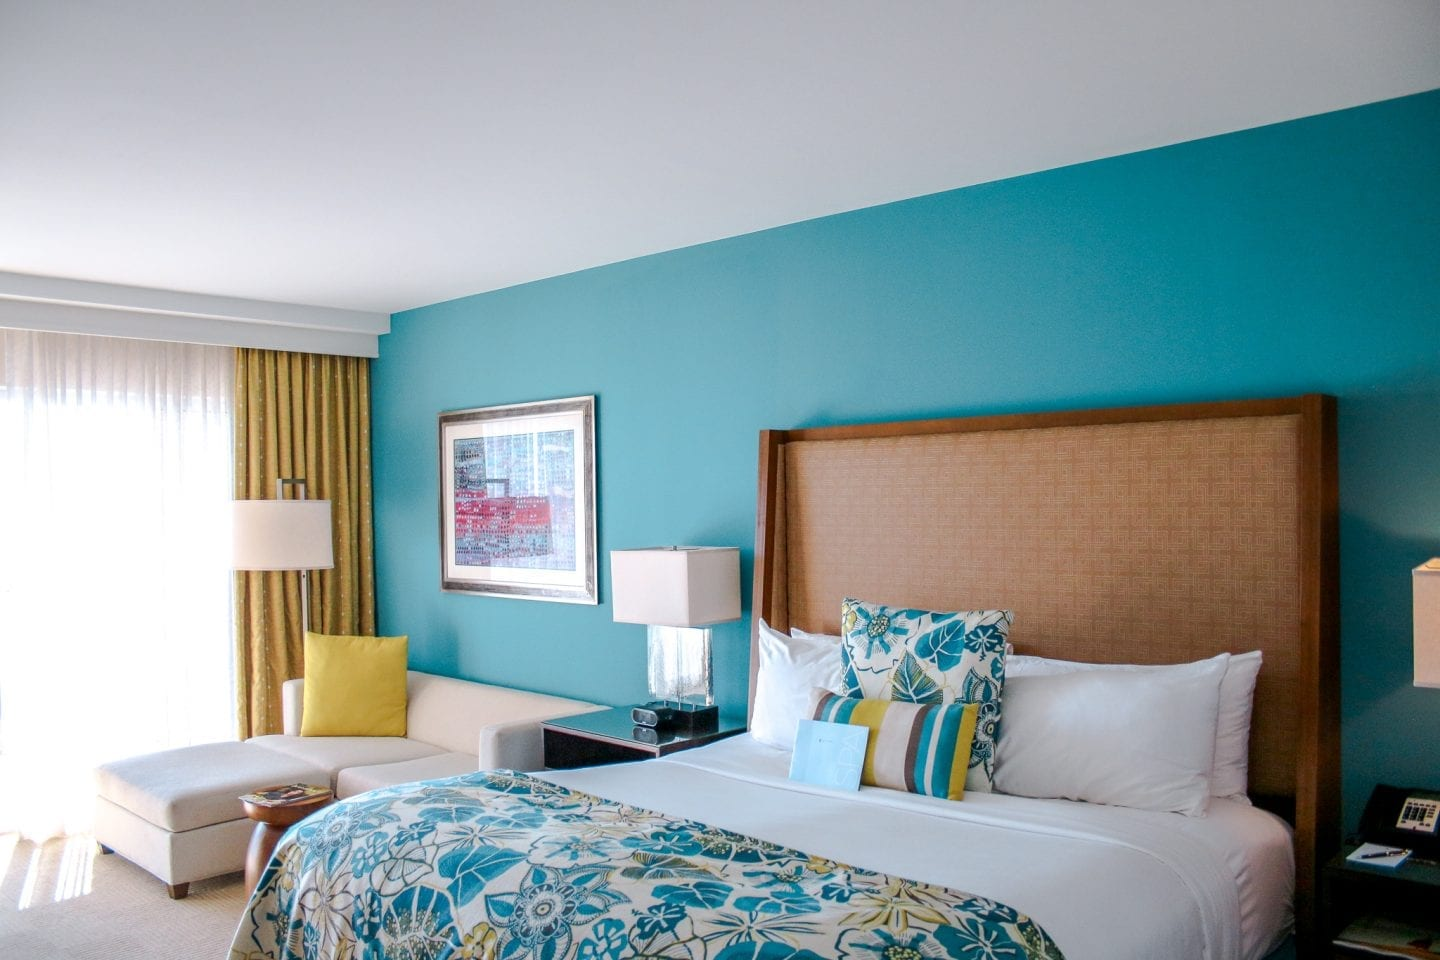 where to stay in aruba - ritz carlton guest room